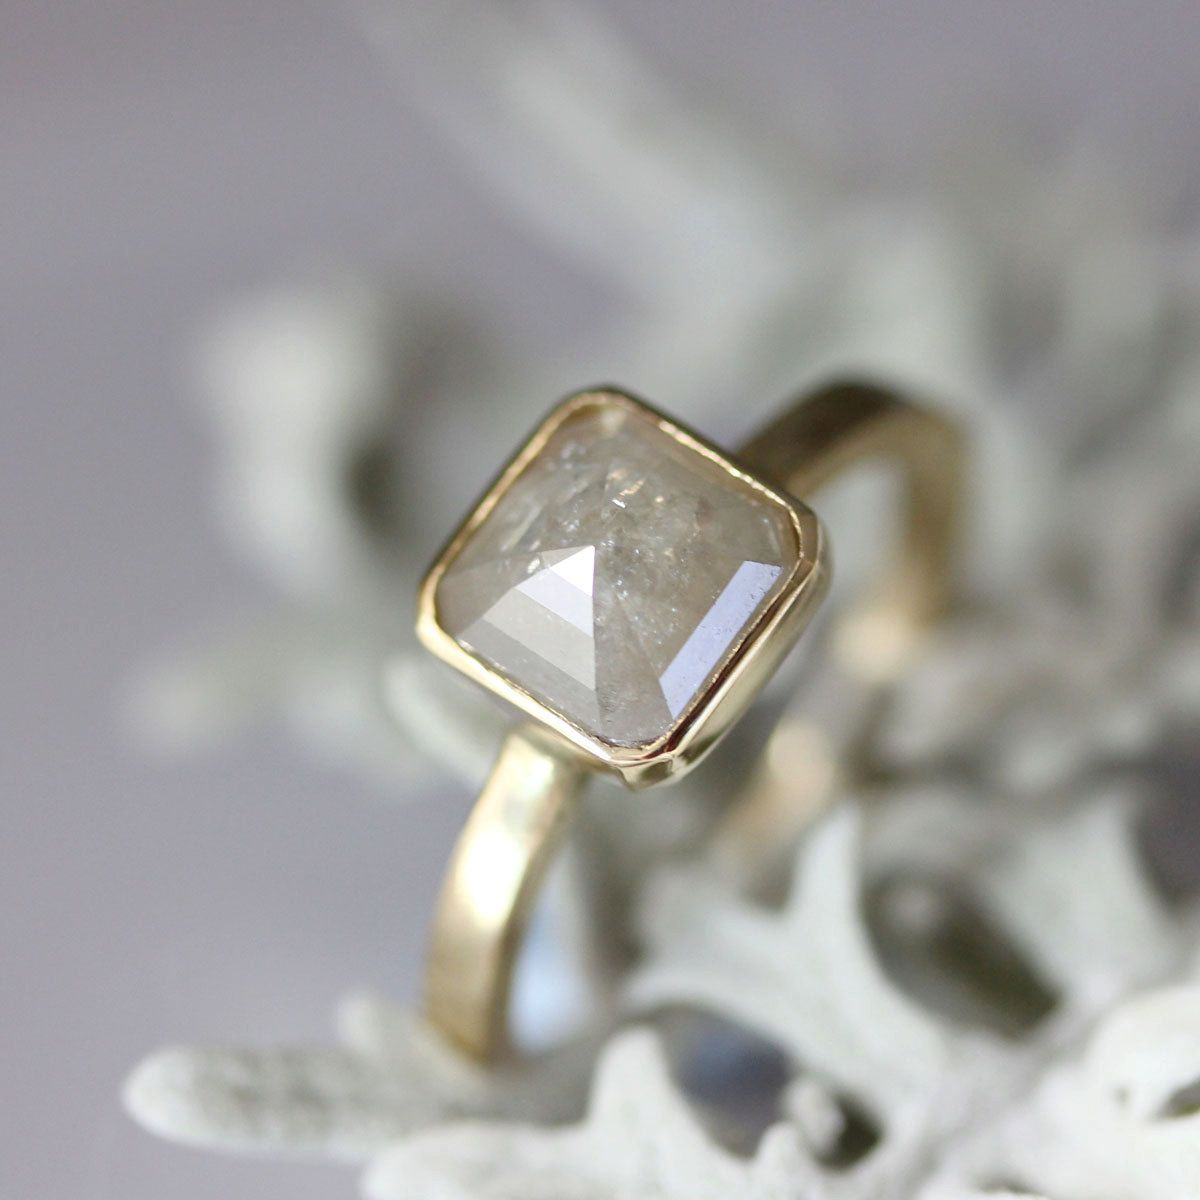 Rose Cut White Gray Asscher Cut Diamond In 14K Yellow Gold Engagement Ring - Ready To Ship. $1,150.00, via Etsy.